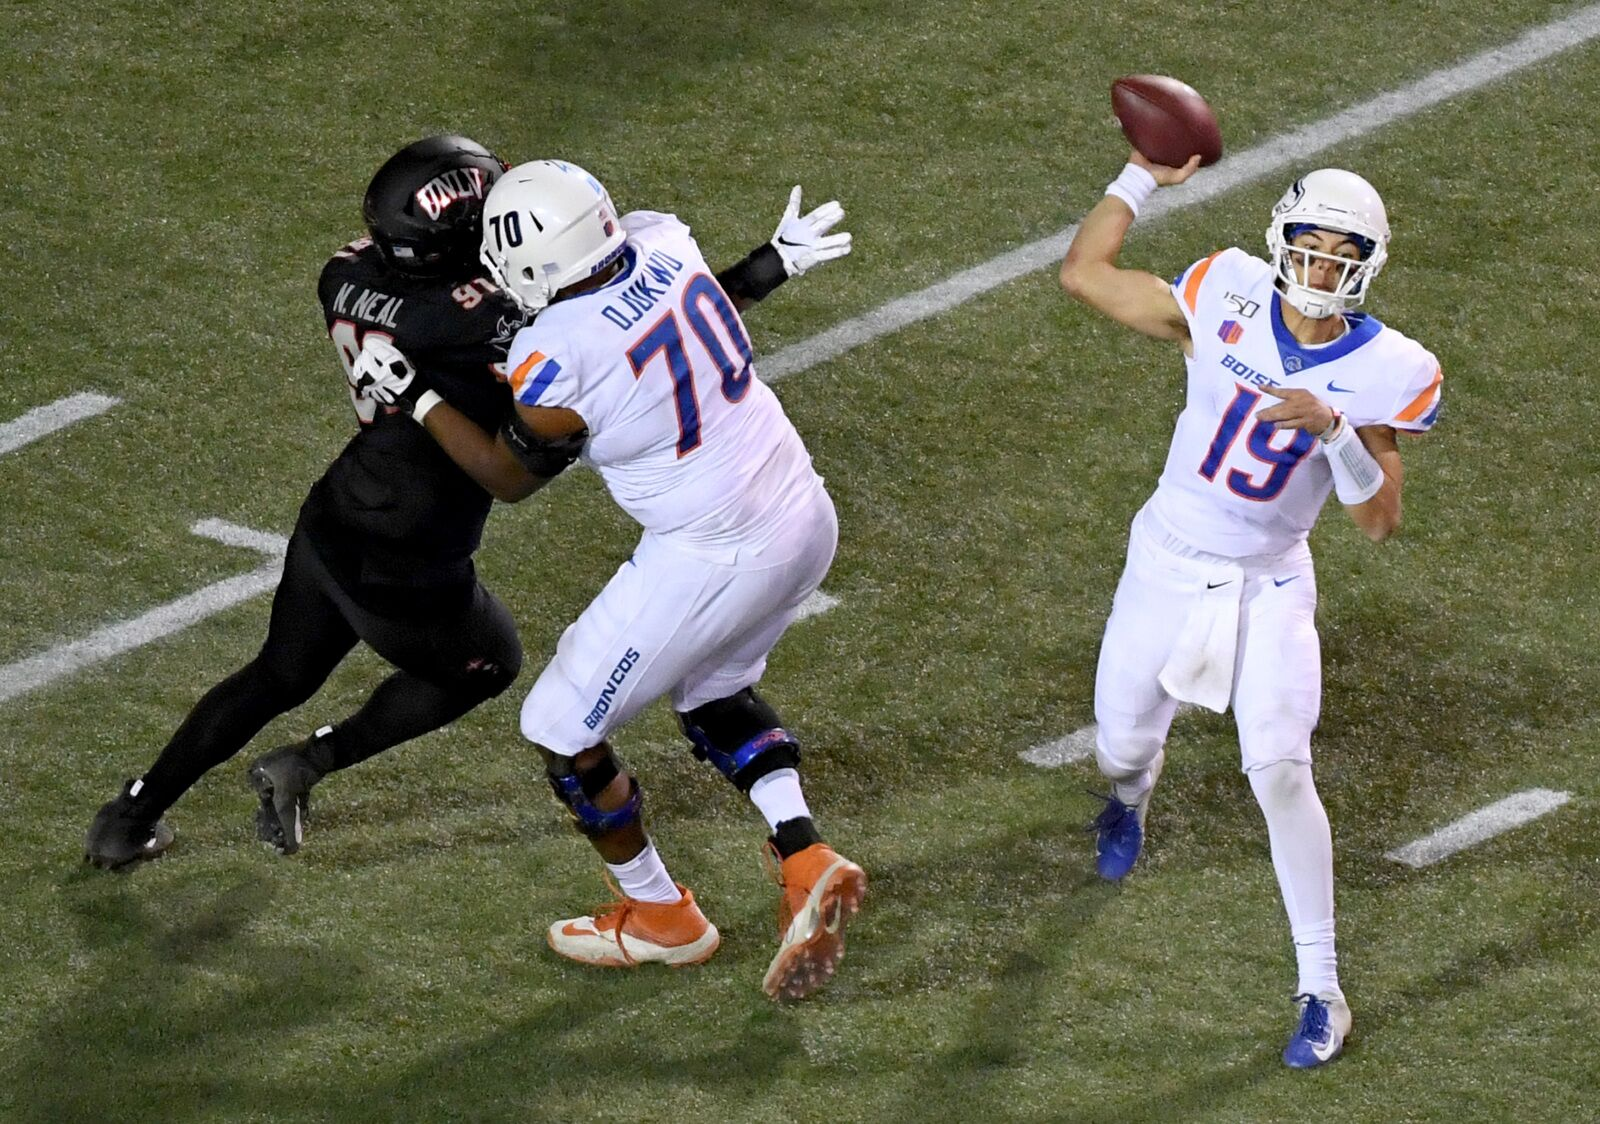 Boise State Football: Can Broncos get past high flying Hawaii in Week 7?